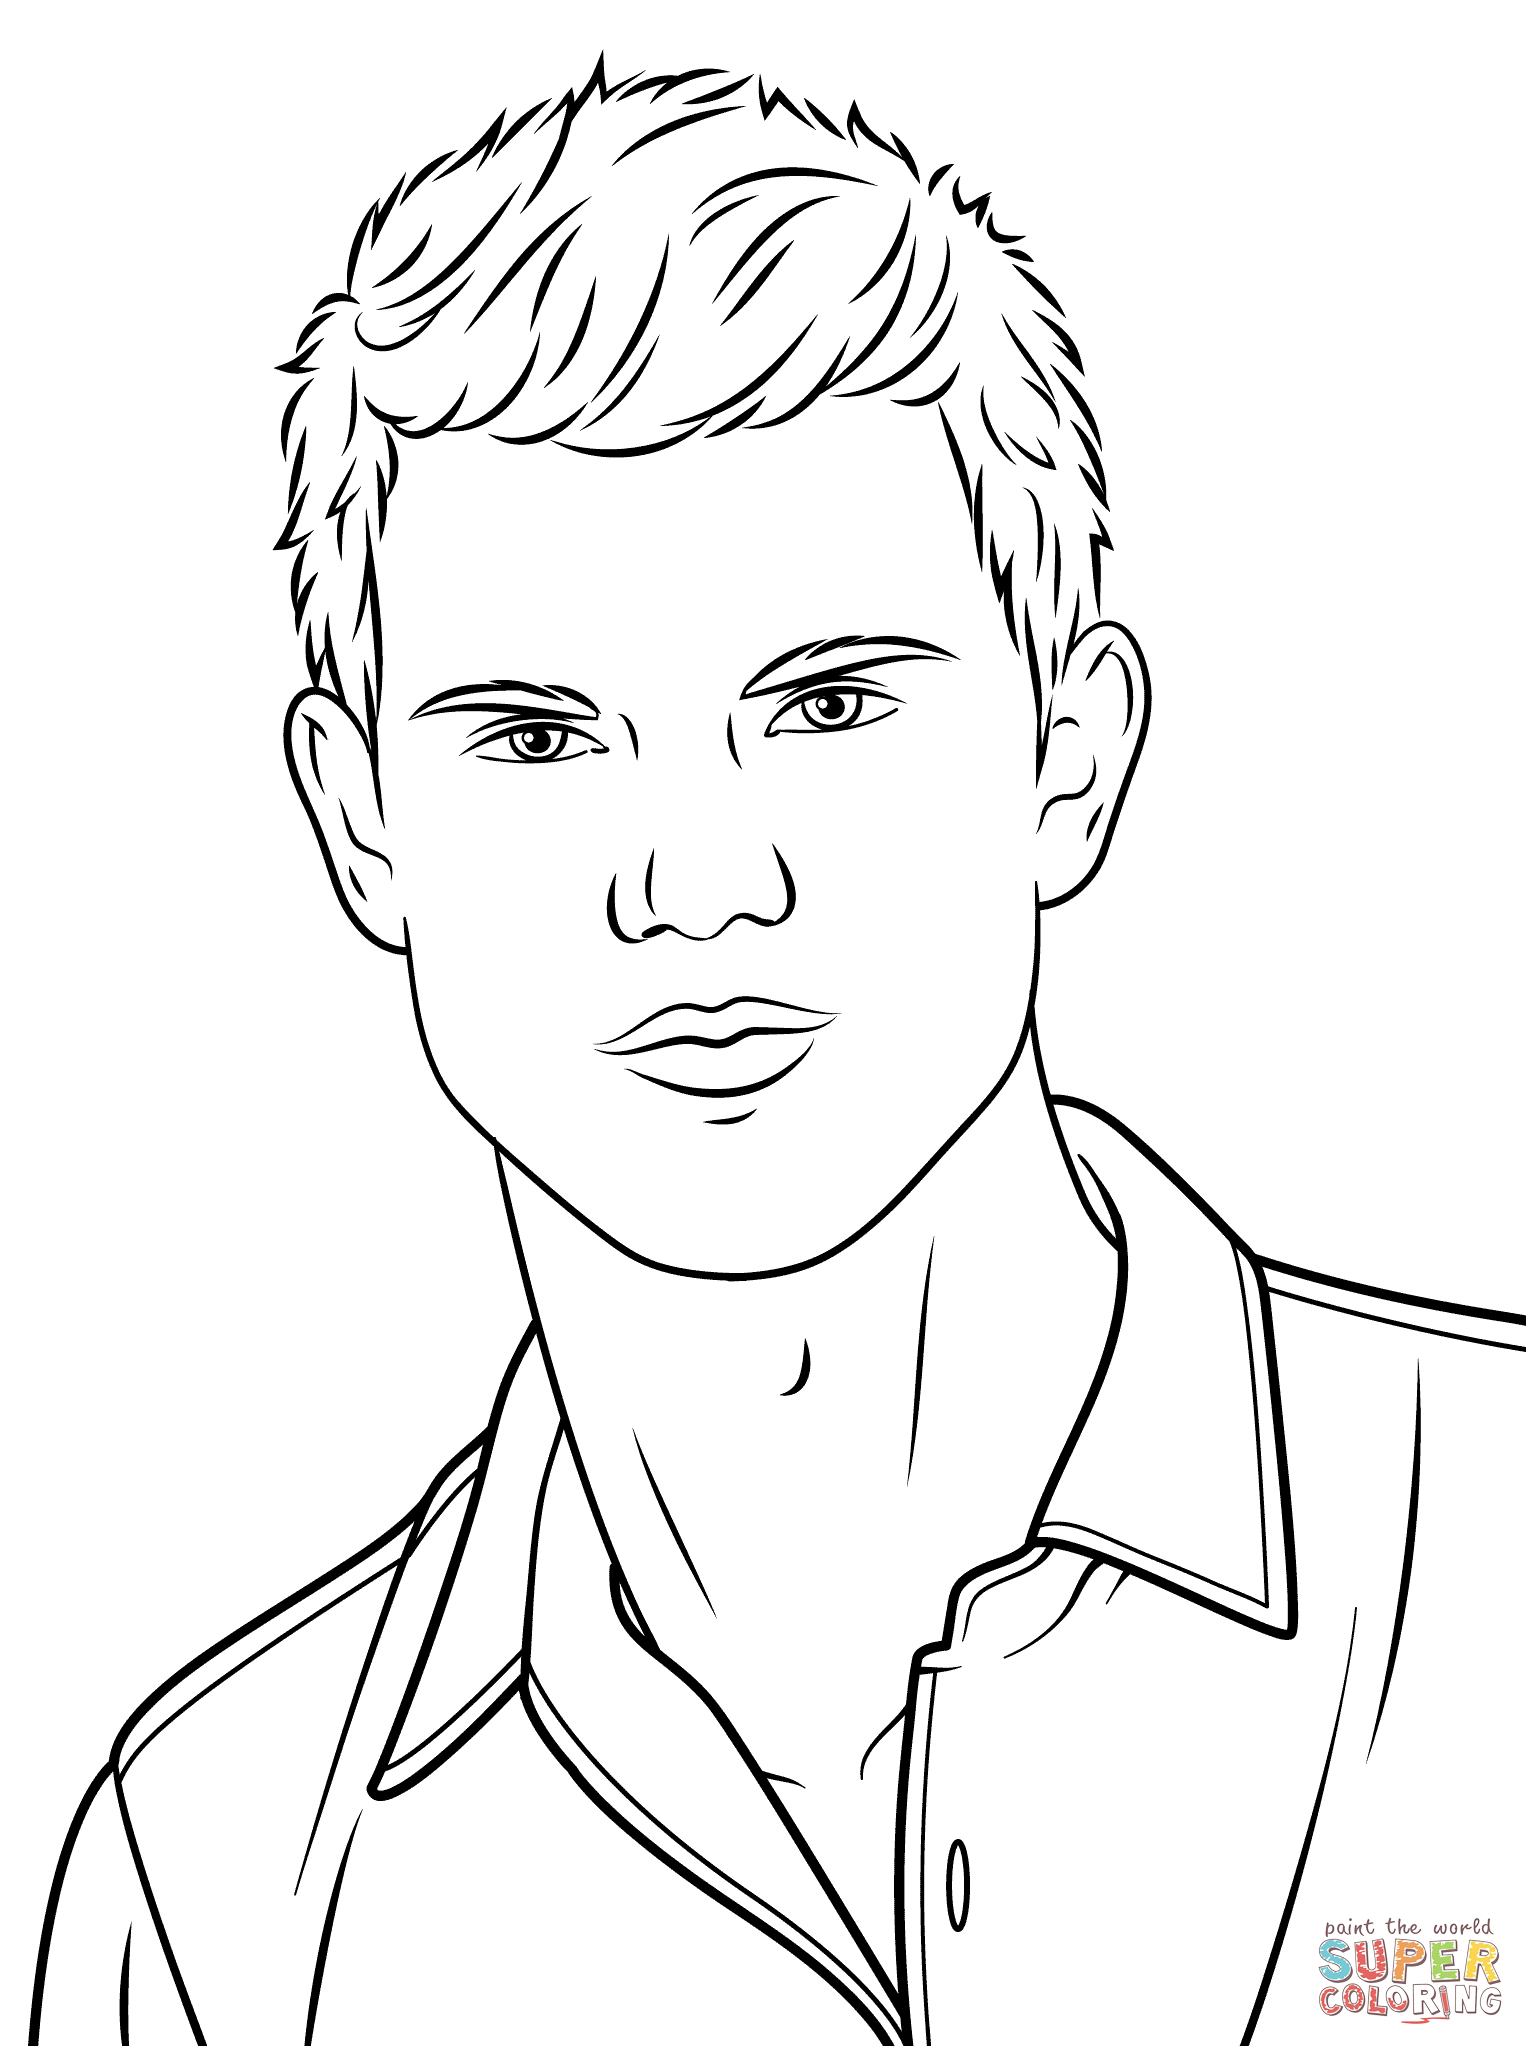 taylor swift coloring pages 2013 taylor swift coloring page sheets coloring pages taylor pages swift coloring